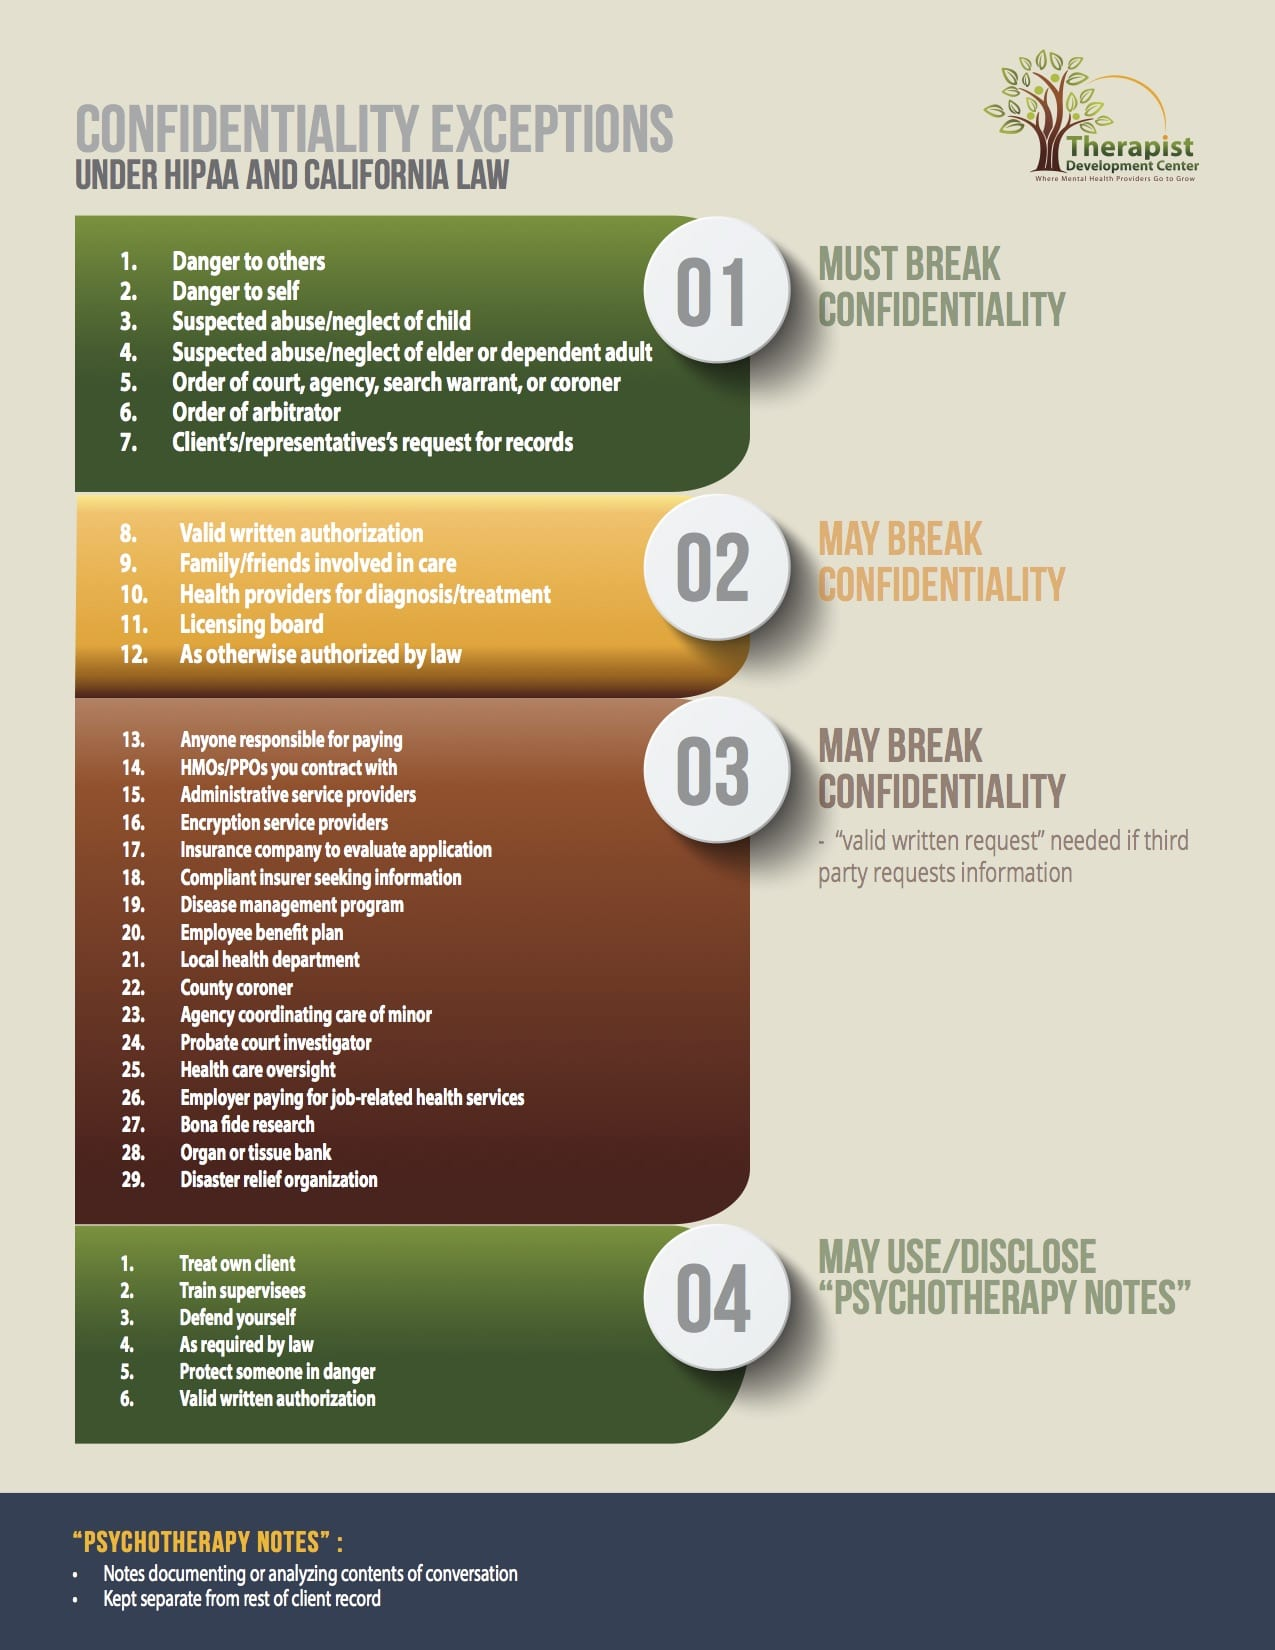 Infographic #1b (HIPAA-Cal. Conf. Excepts)